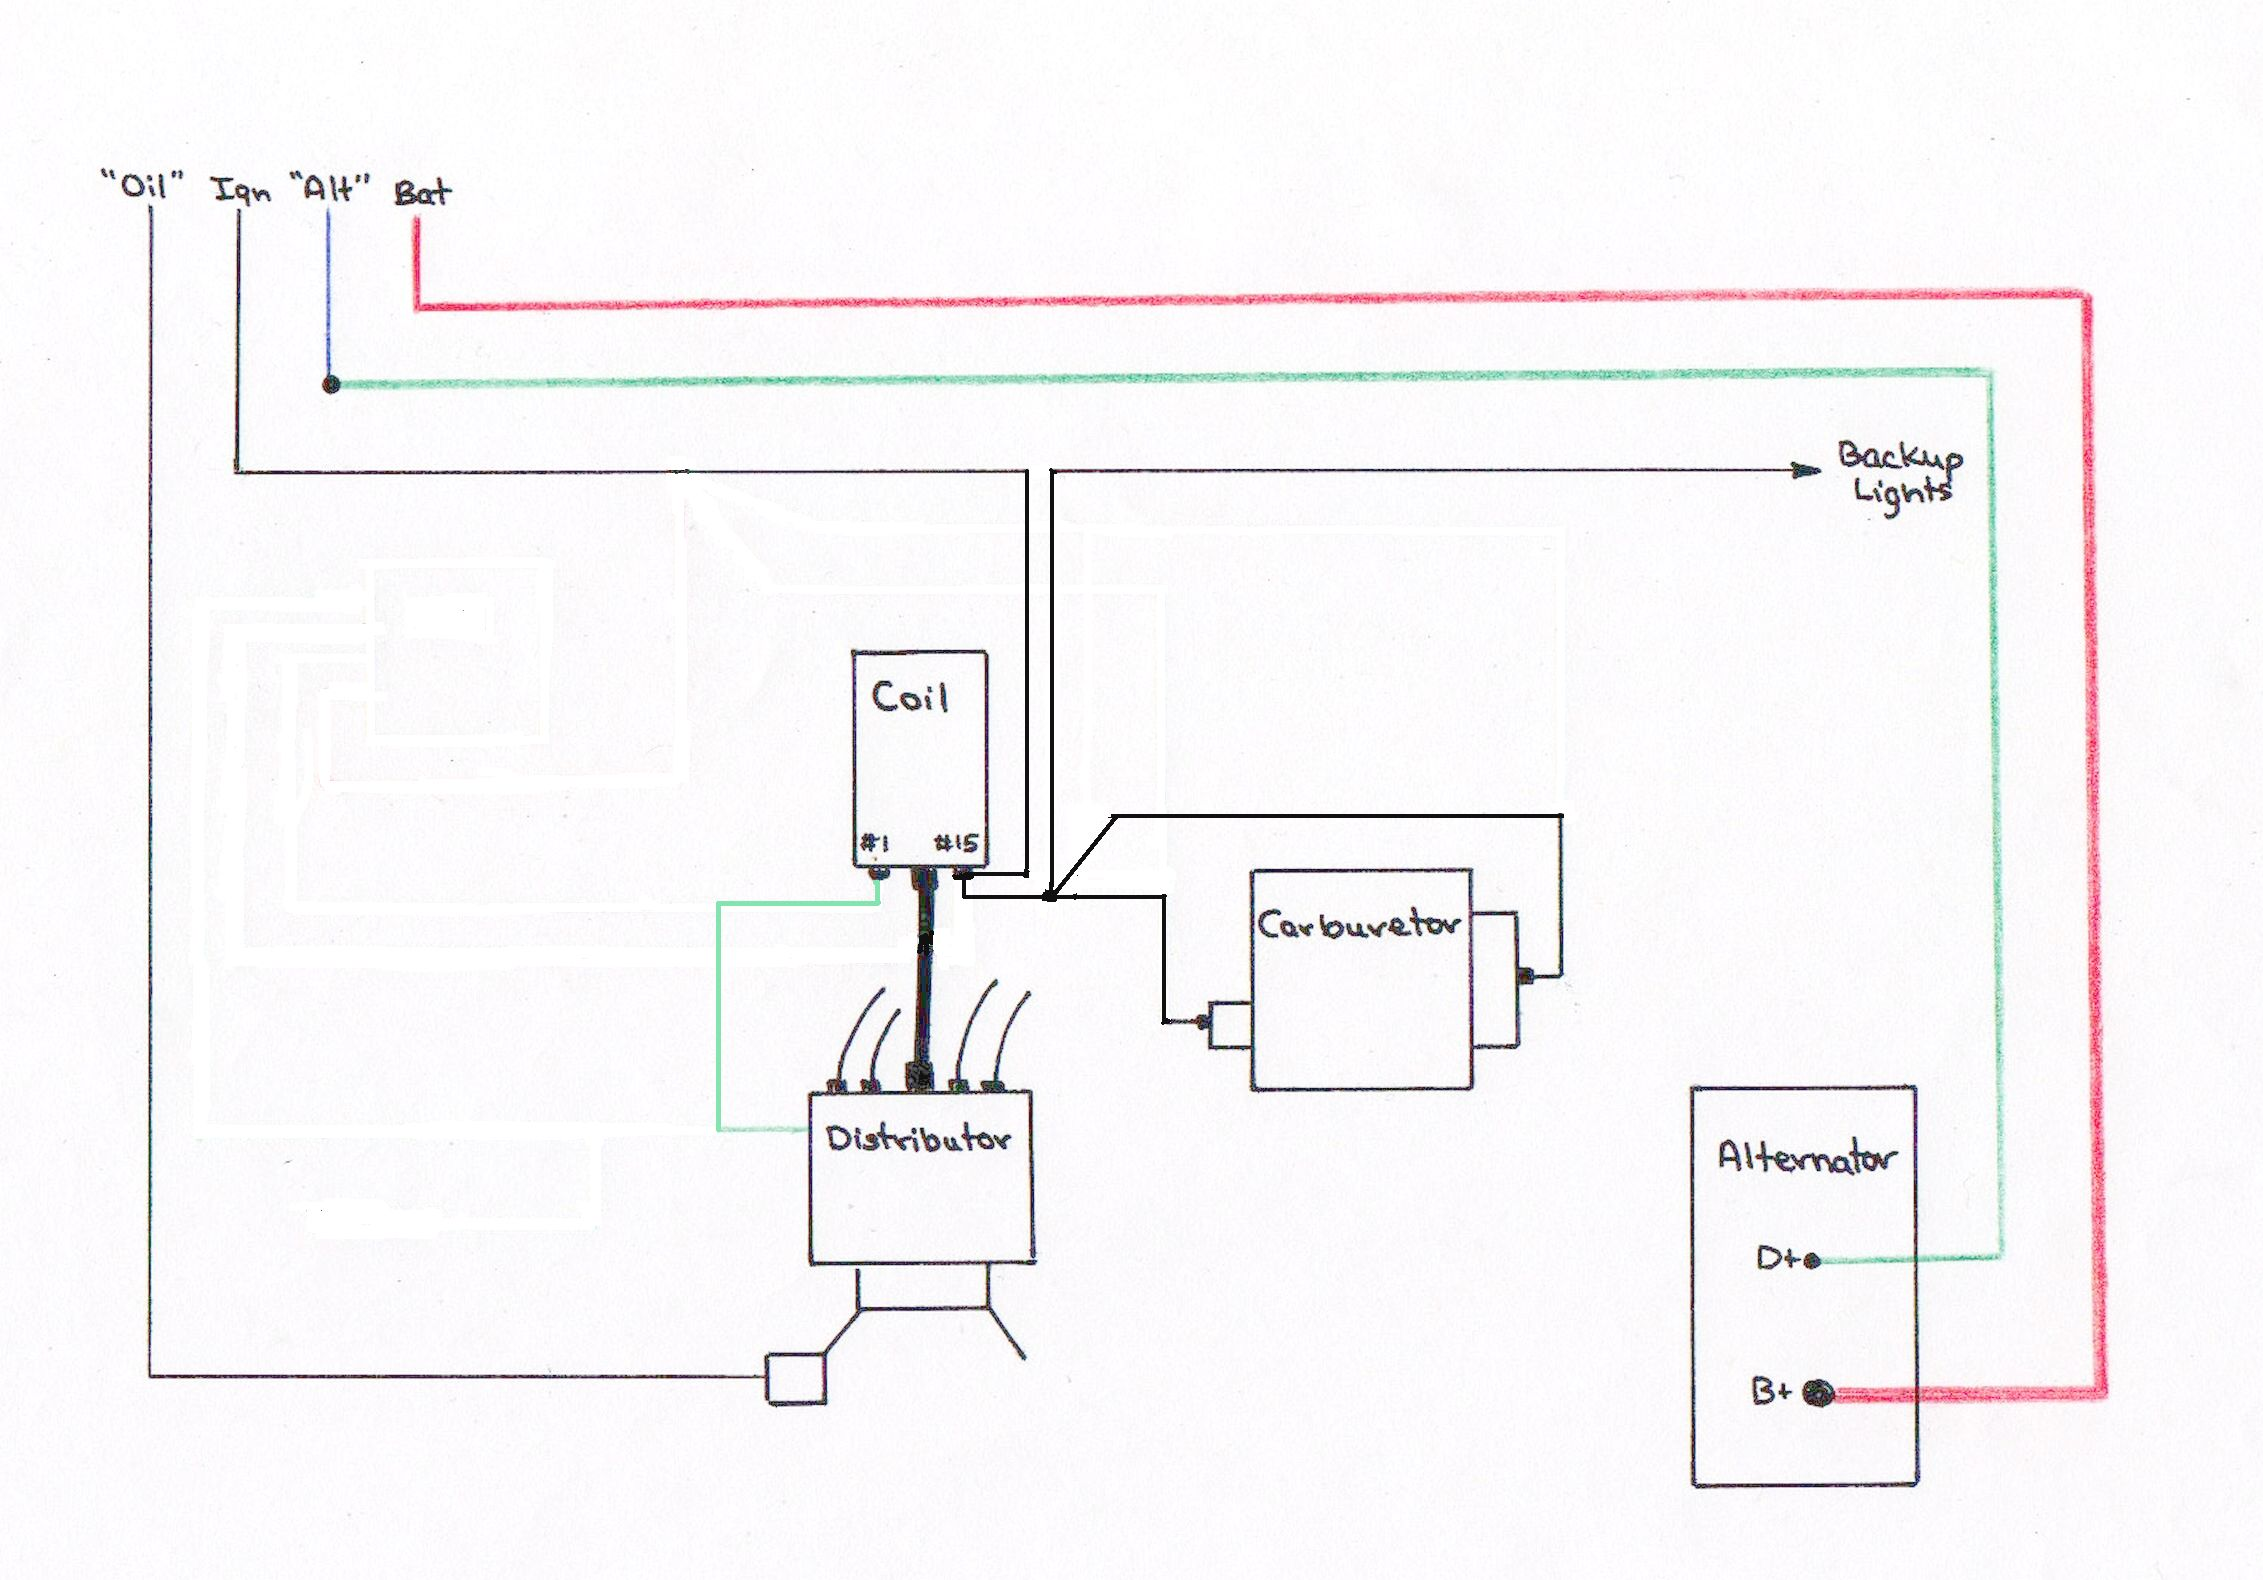 handdrawn_schematic alternator wiring external regulated alternator wiring diagram at panicattacktreatment.co